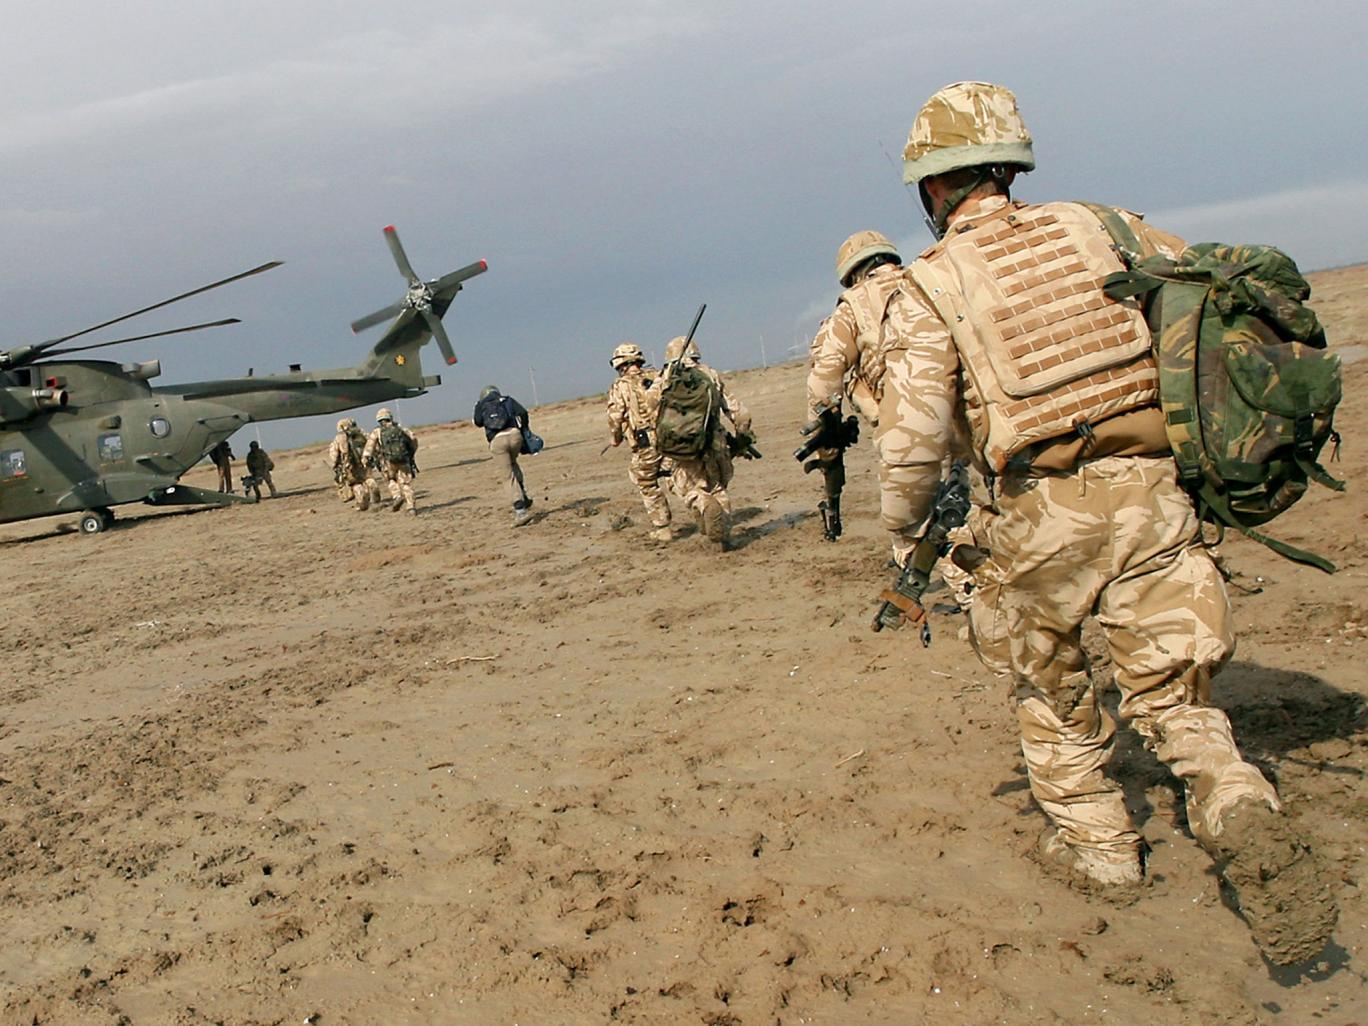 United Kingdom Deplyoing 250 More Troops to Iraq